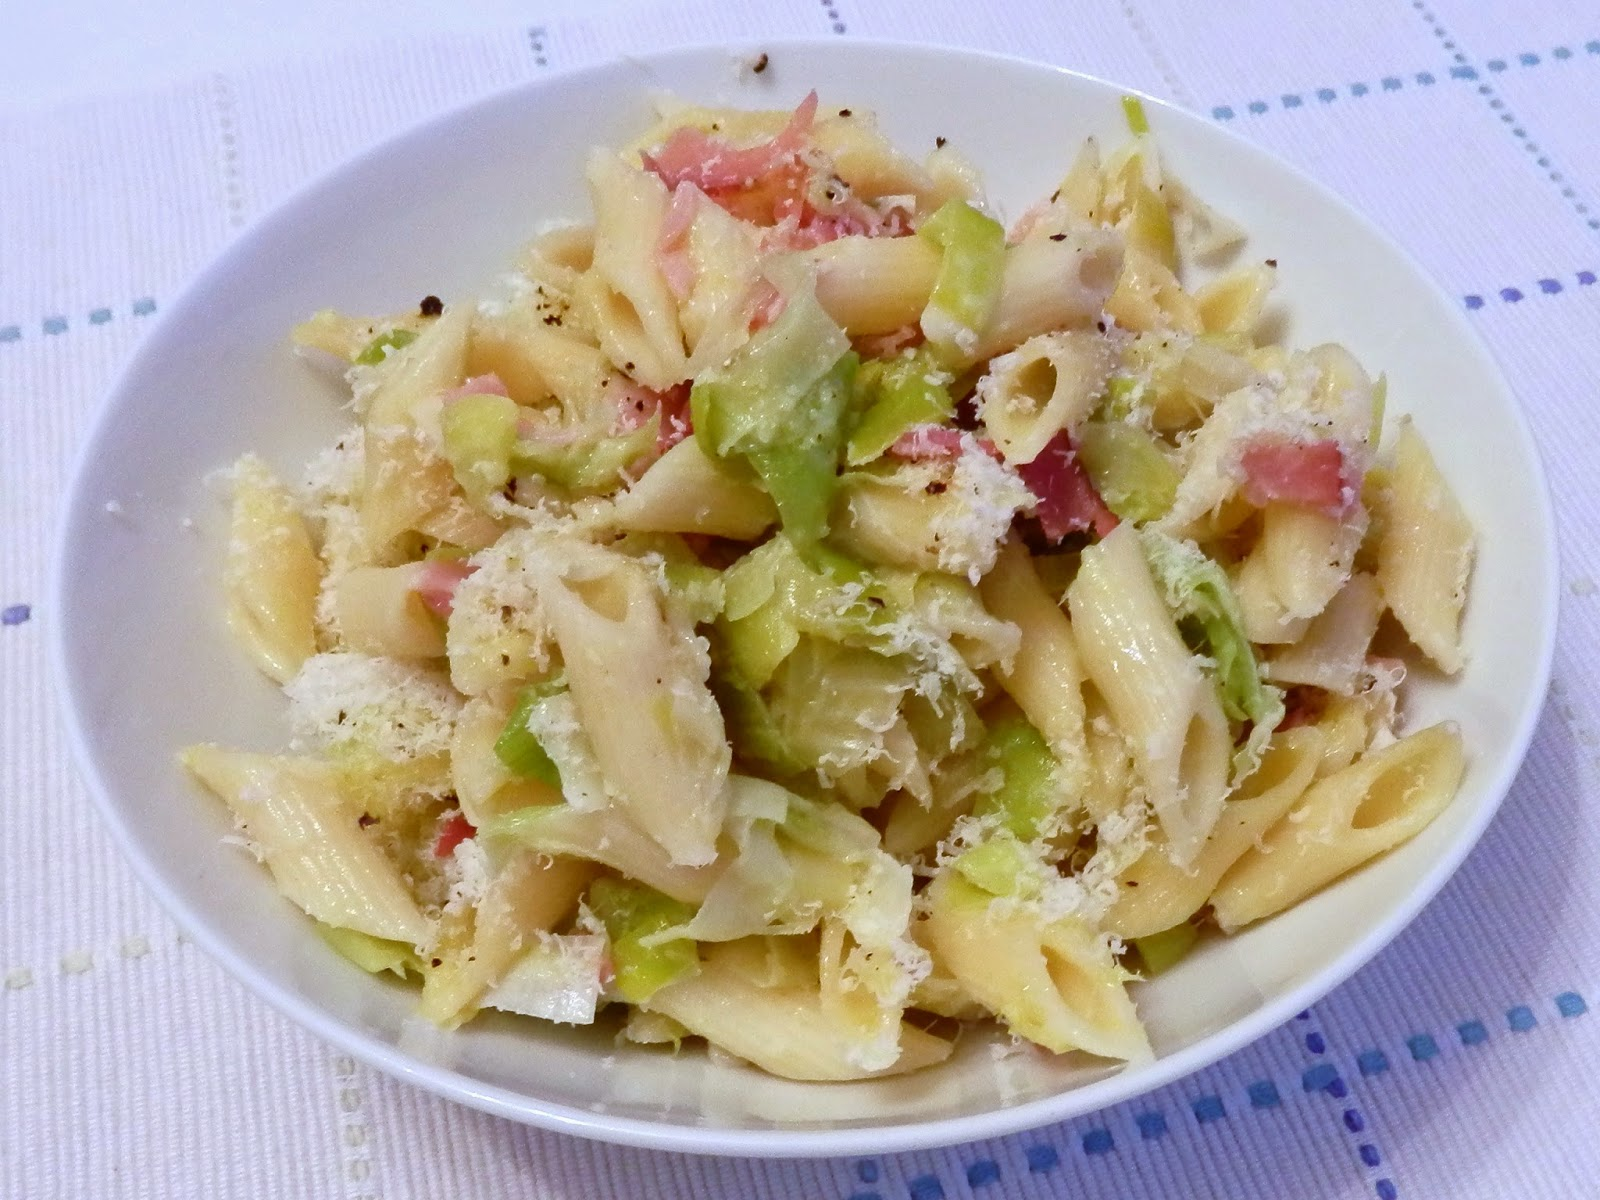 Leek and Speck Pasta